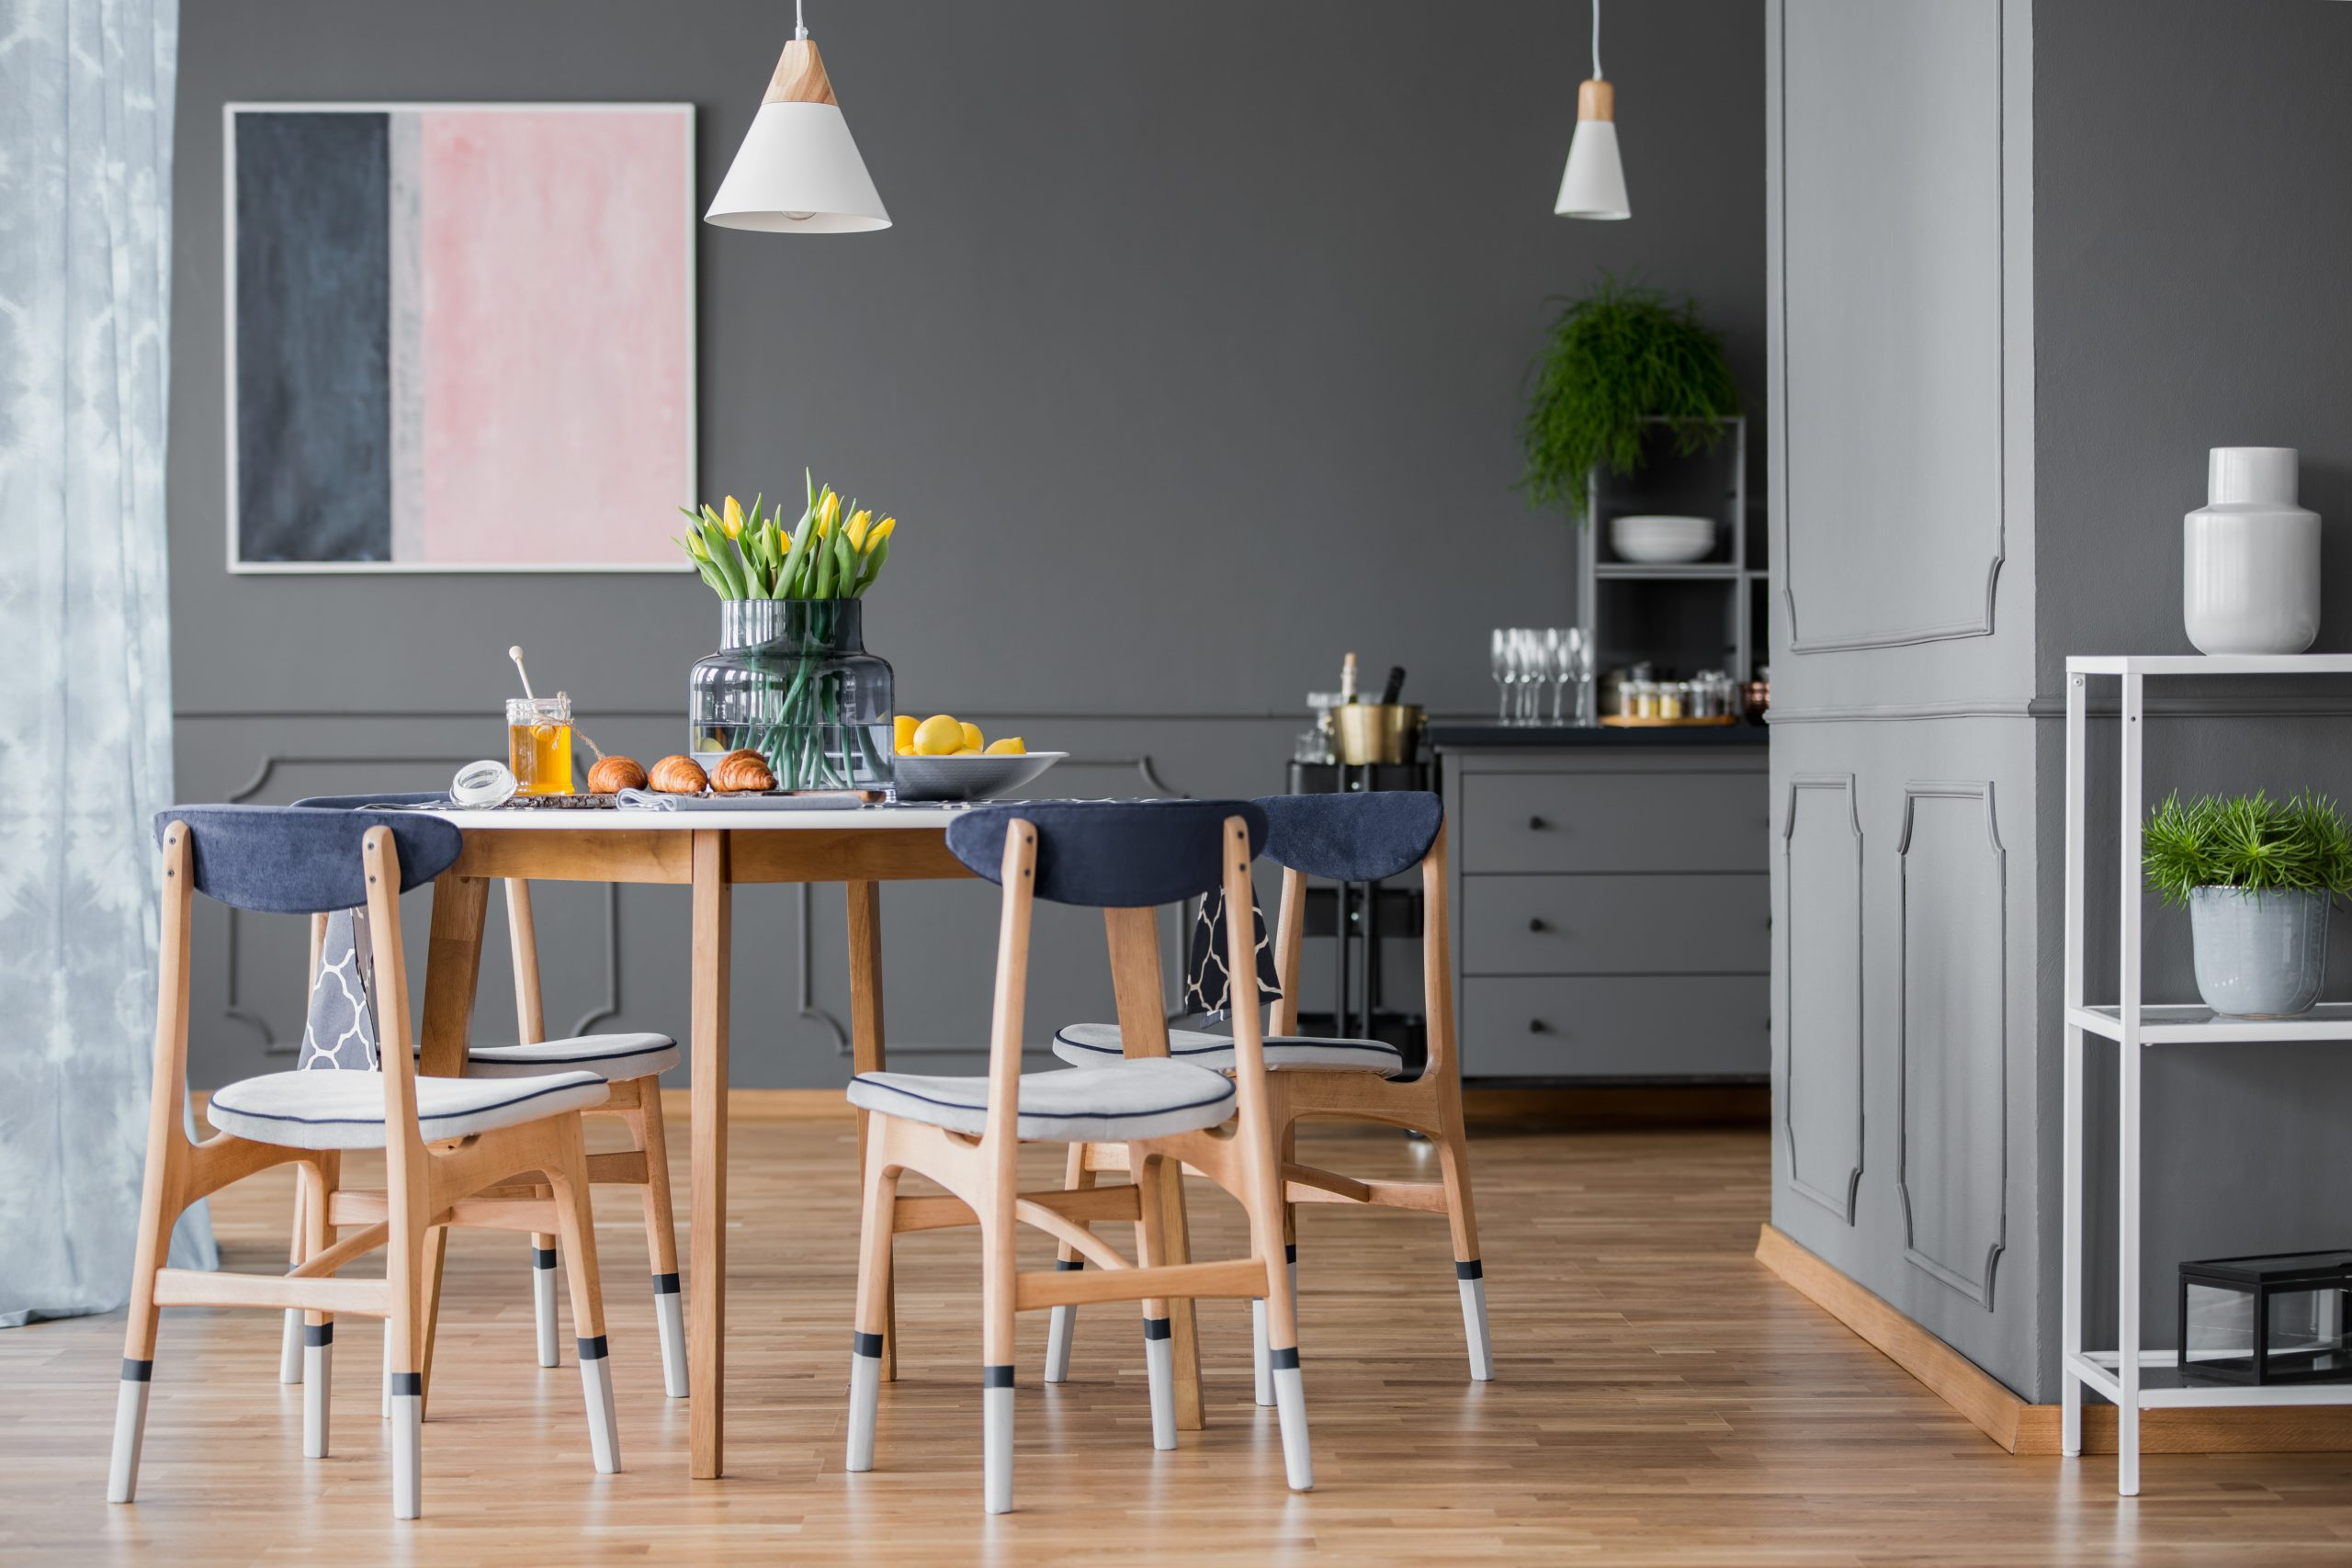 Wooden, paint-dipped chairs around a small dining table with pastries and an abstract painting on a gray wall of a dining room interior with plants